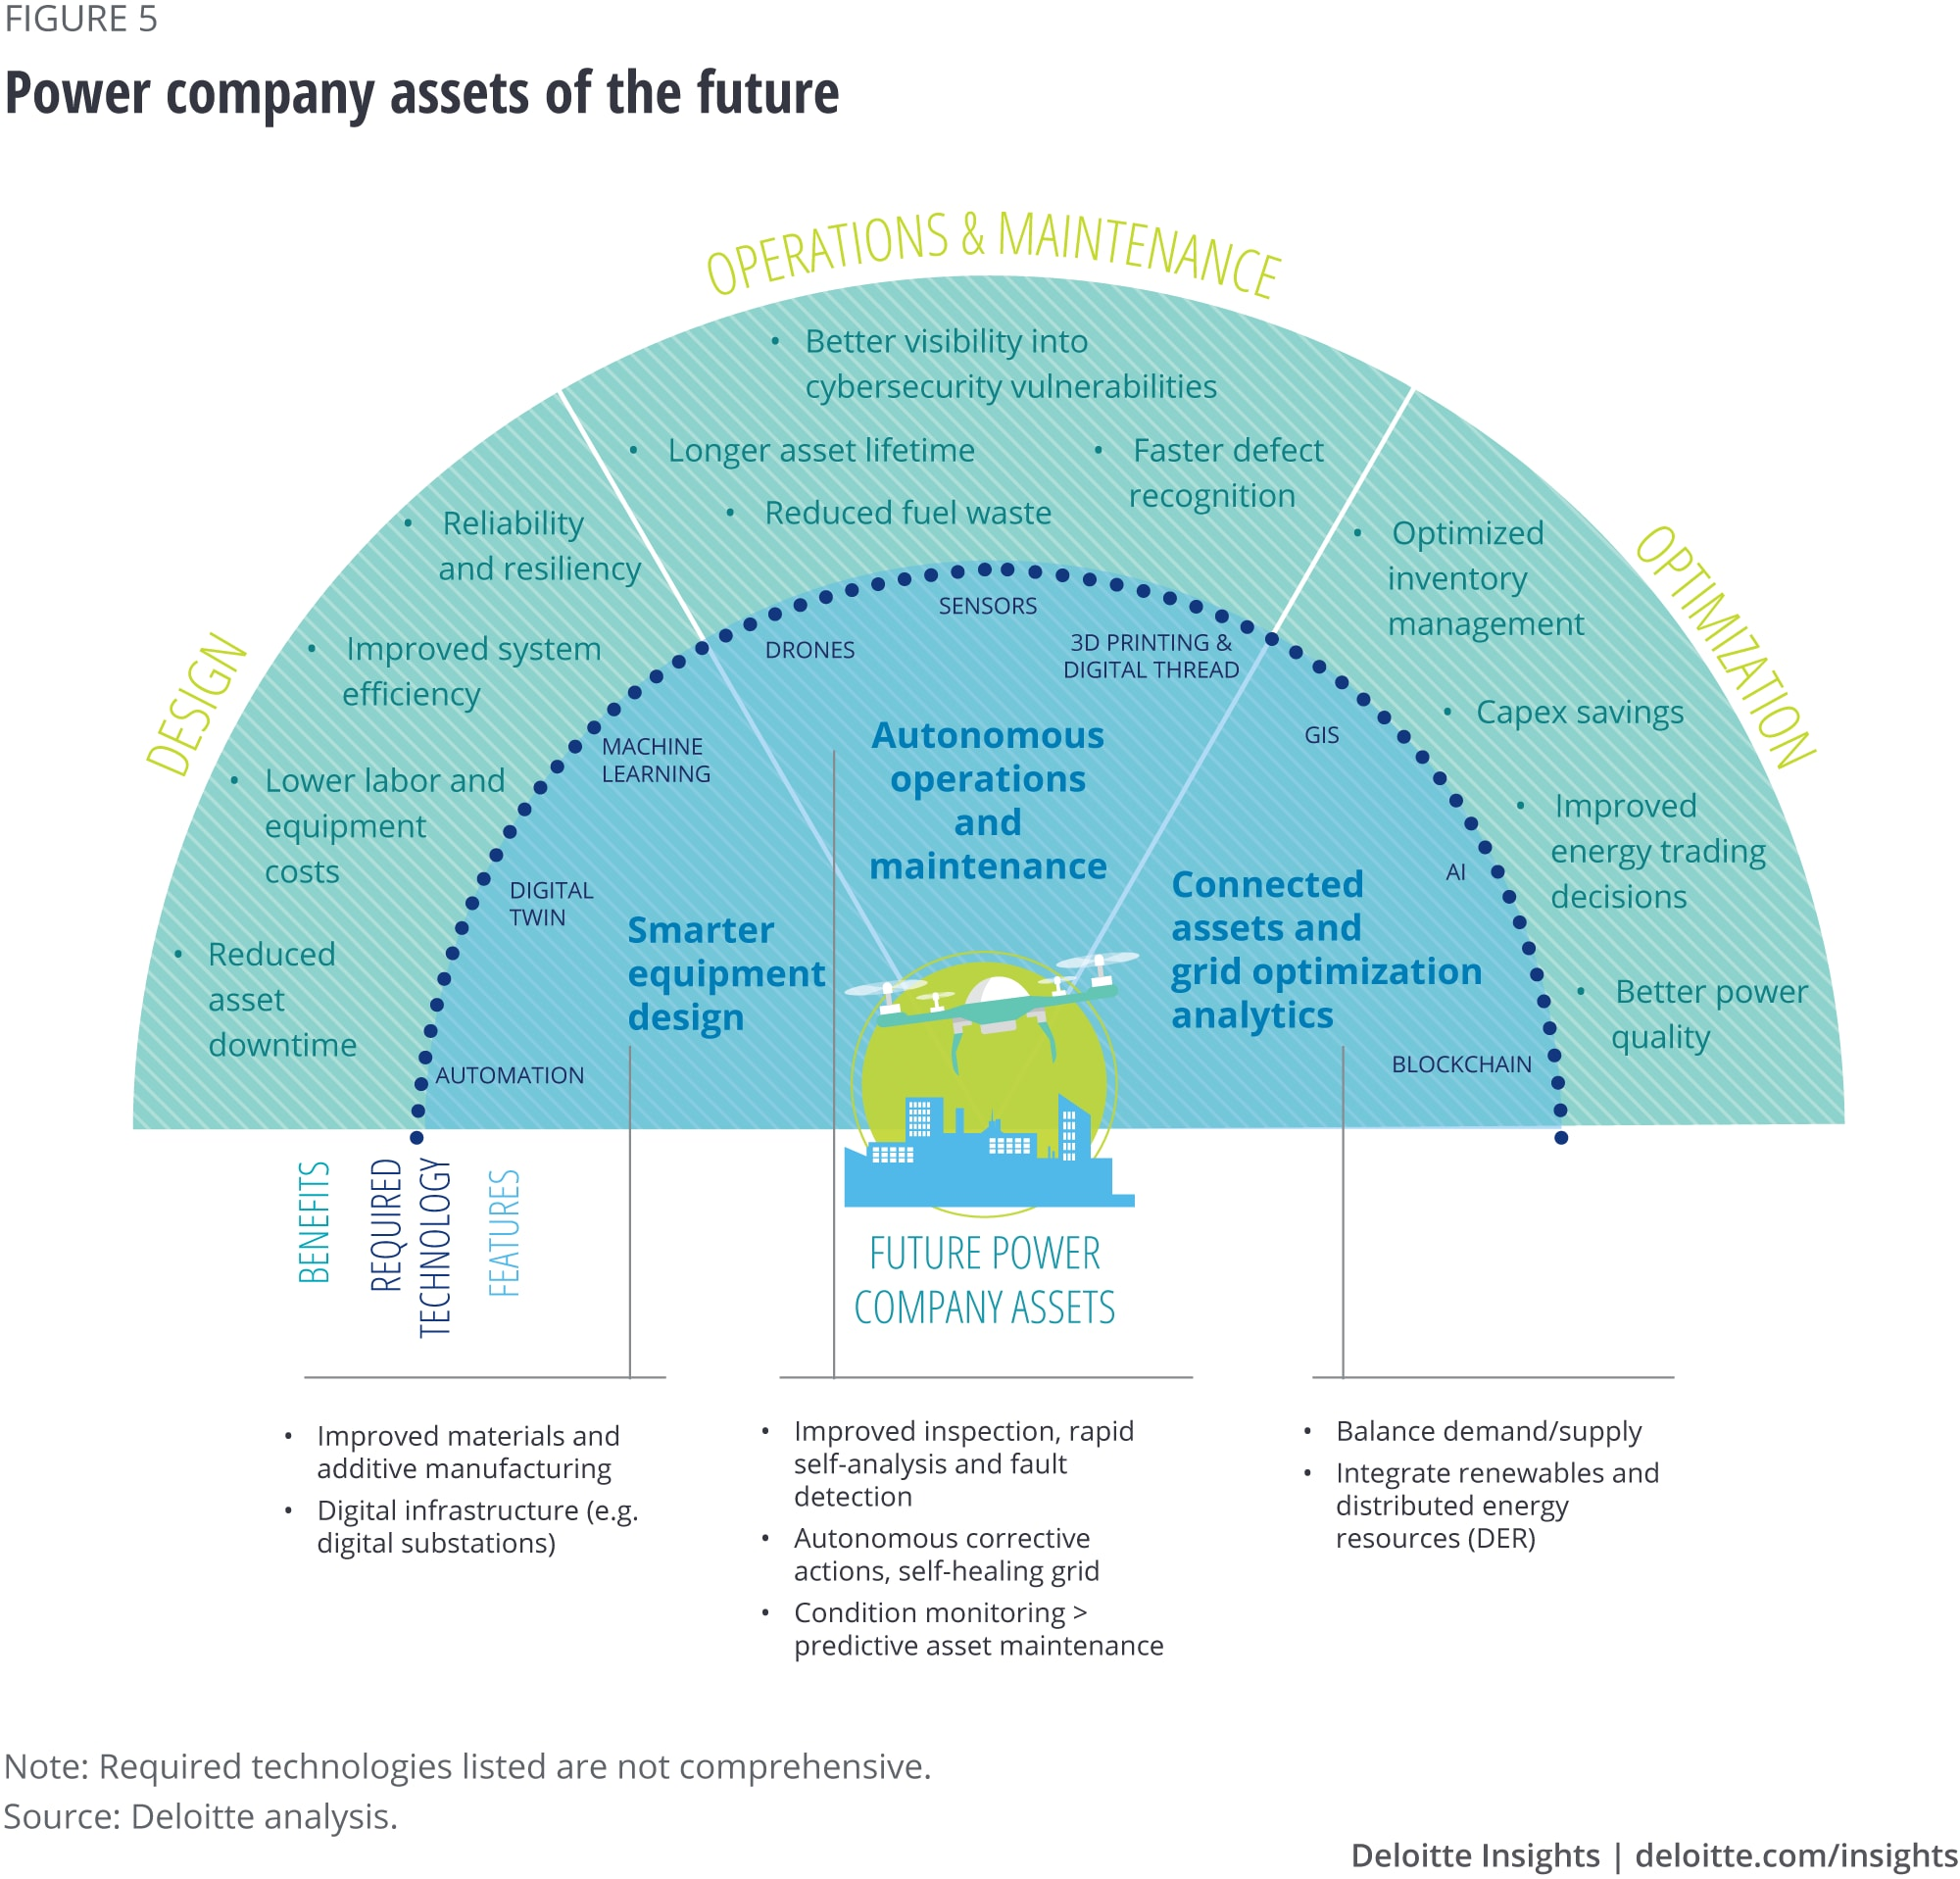 Power company assets of the future